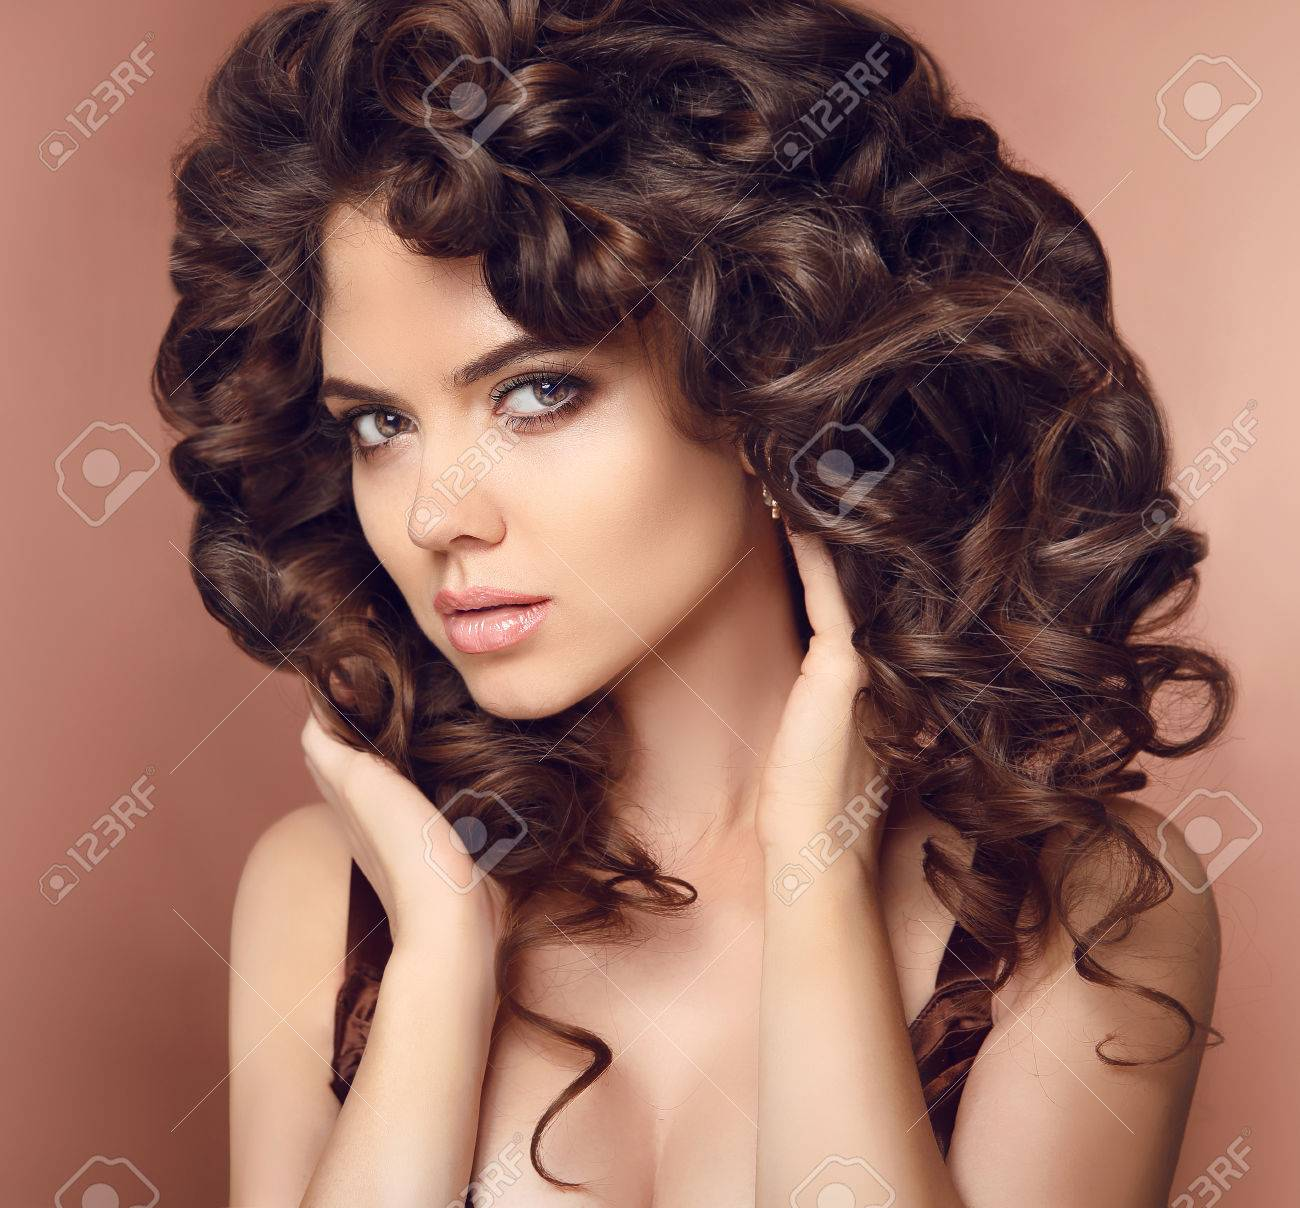 Healthy Hair Makeup Beautiful Brunette Girl Model With Long